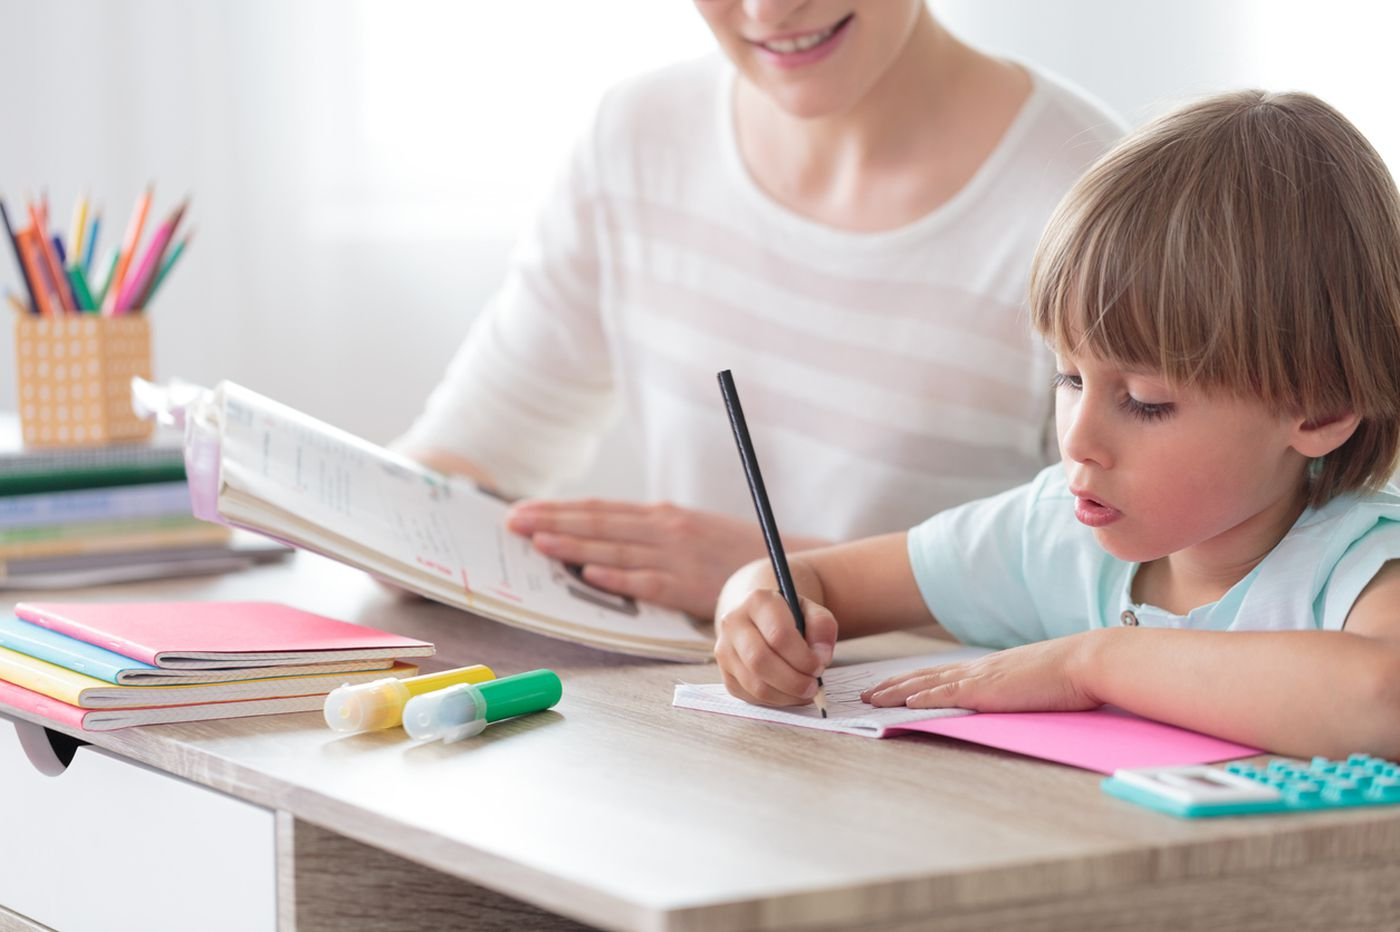 One in three kids with ADHD get no support services, new study finds